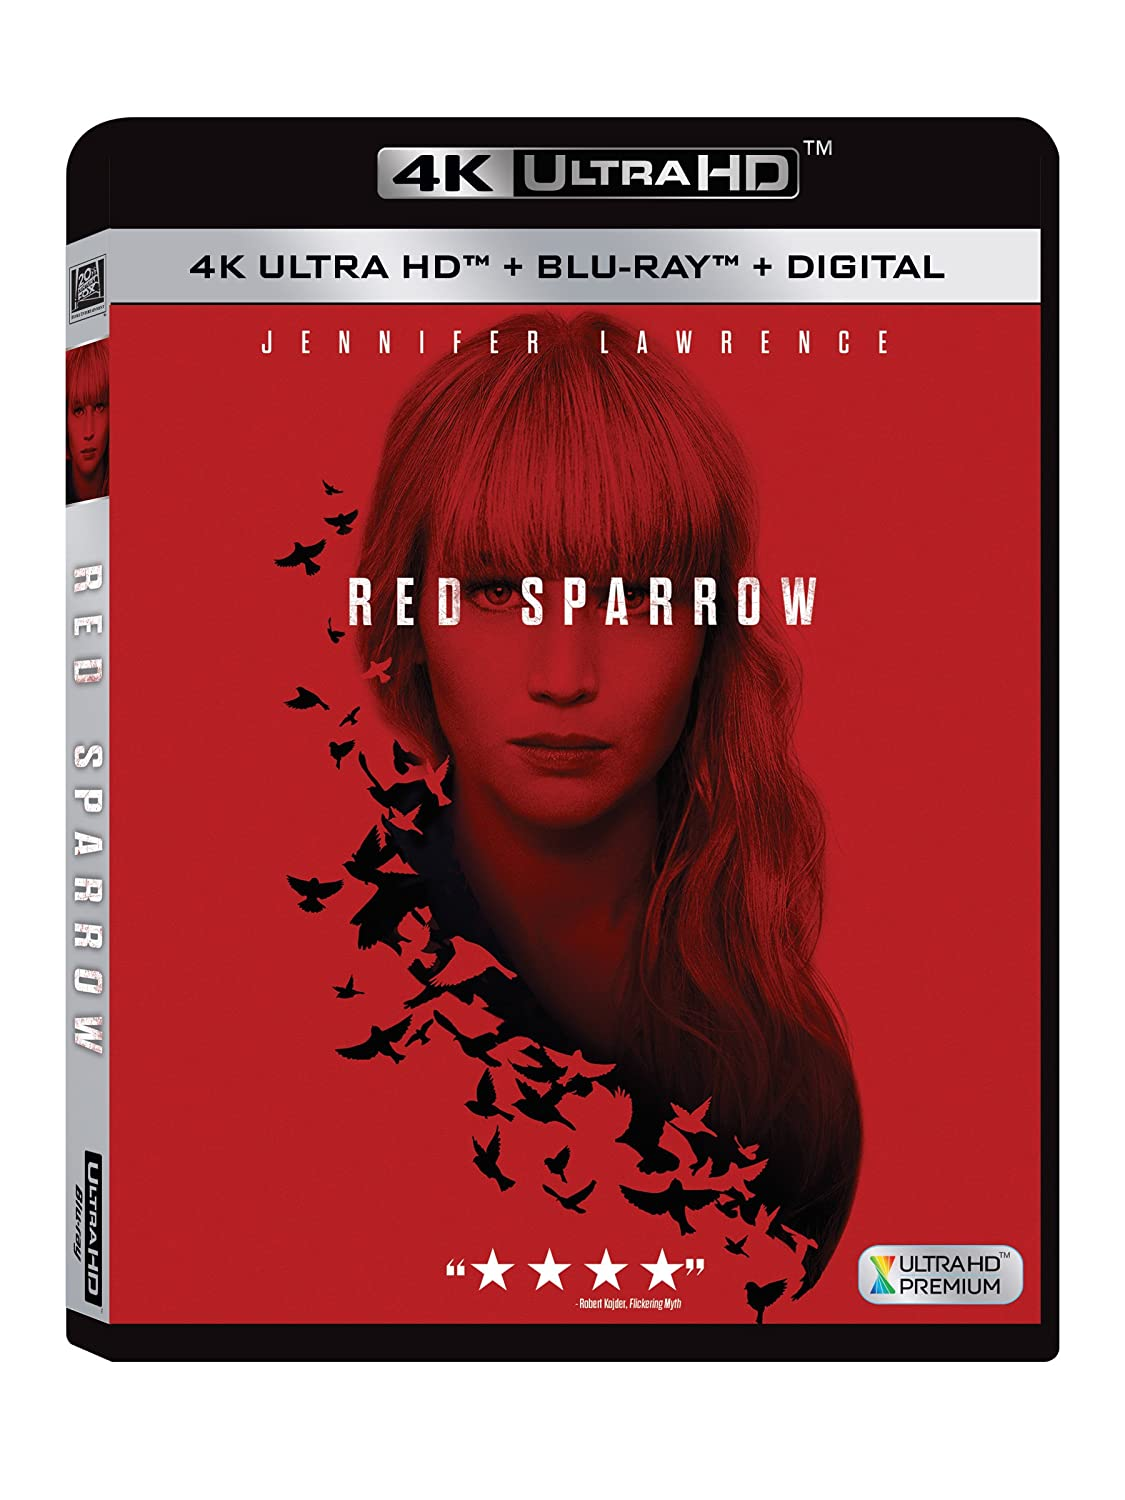 Red Sparrow 4K UHD Blu-Ray Region Free Deutsche Sprache. Deutsche  Untertitel: Amazon.de: Jennifer Lawrence, Joel Edgerton, Matthias  Schoenaerts, Charlotte Rampling, Mary-Louise Parker, CiarÄAn Hinds, Joely  Richardson, Bill Camp, Jeremy Irons, Thekla ...